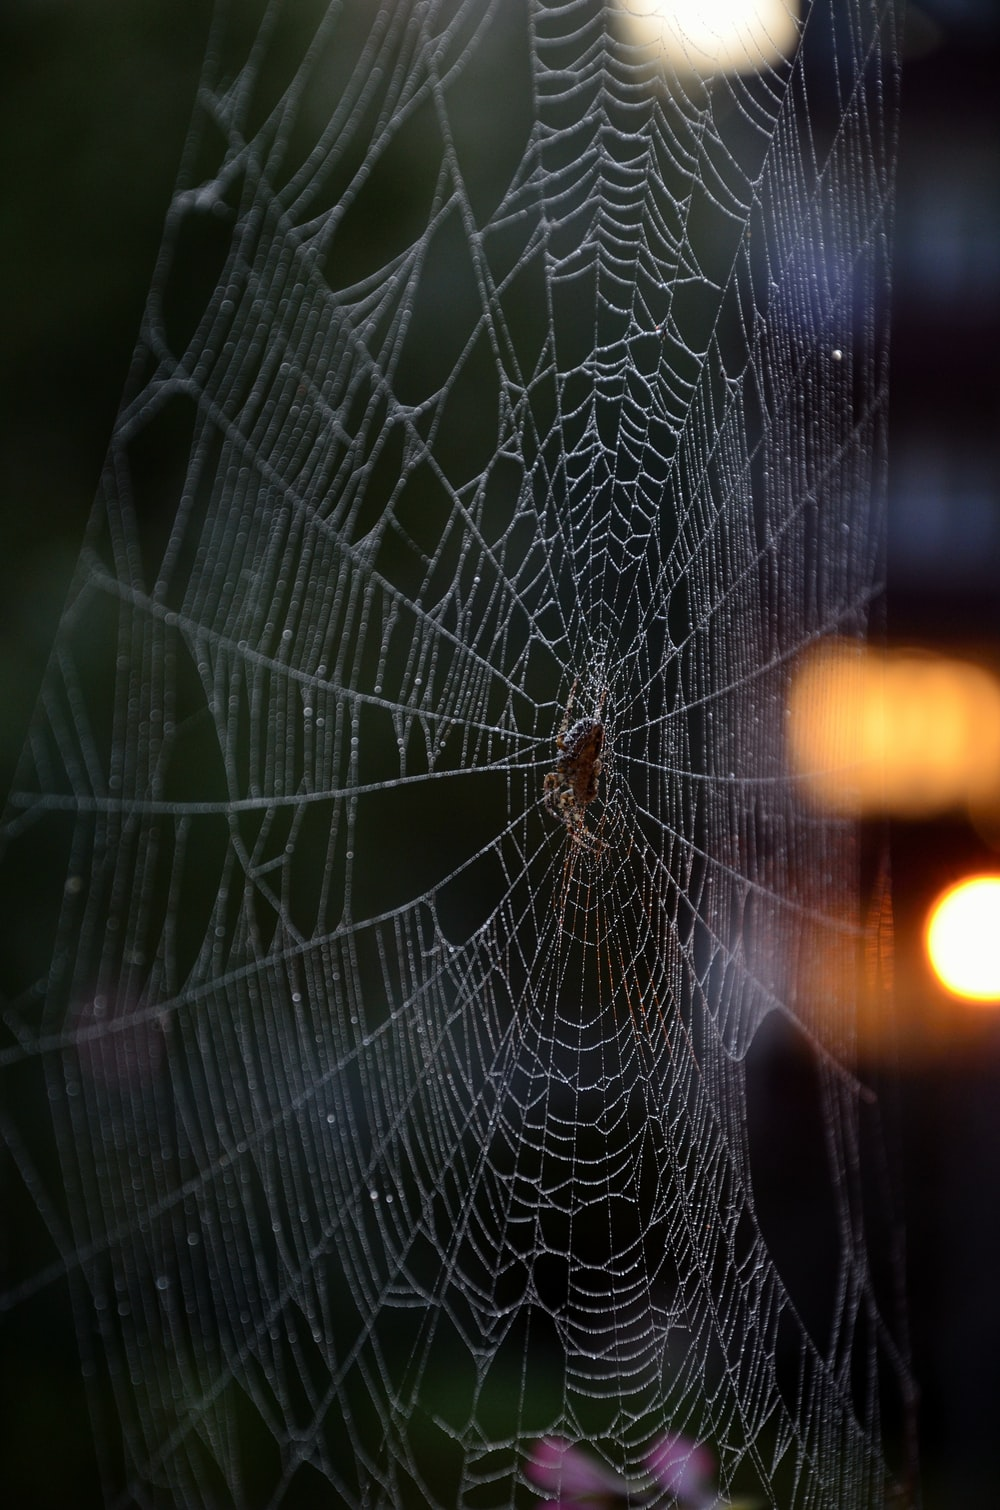 spider web in close up photography during daytime